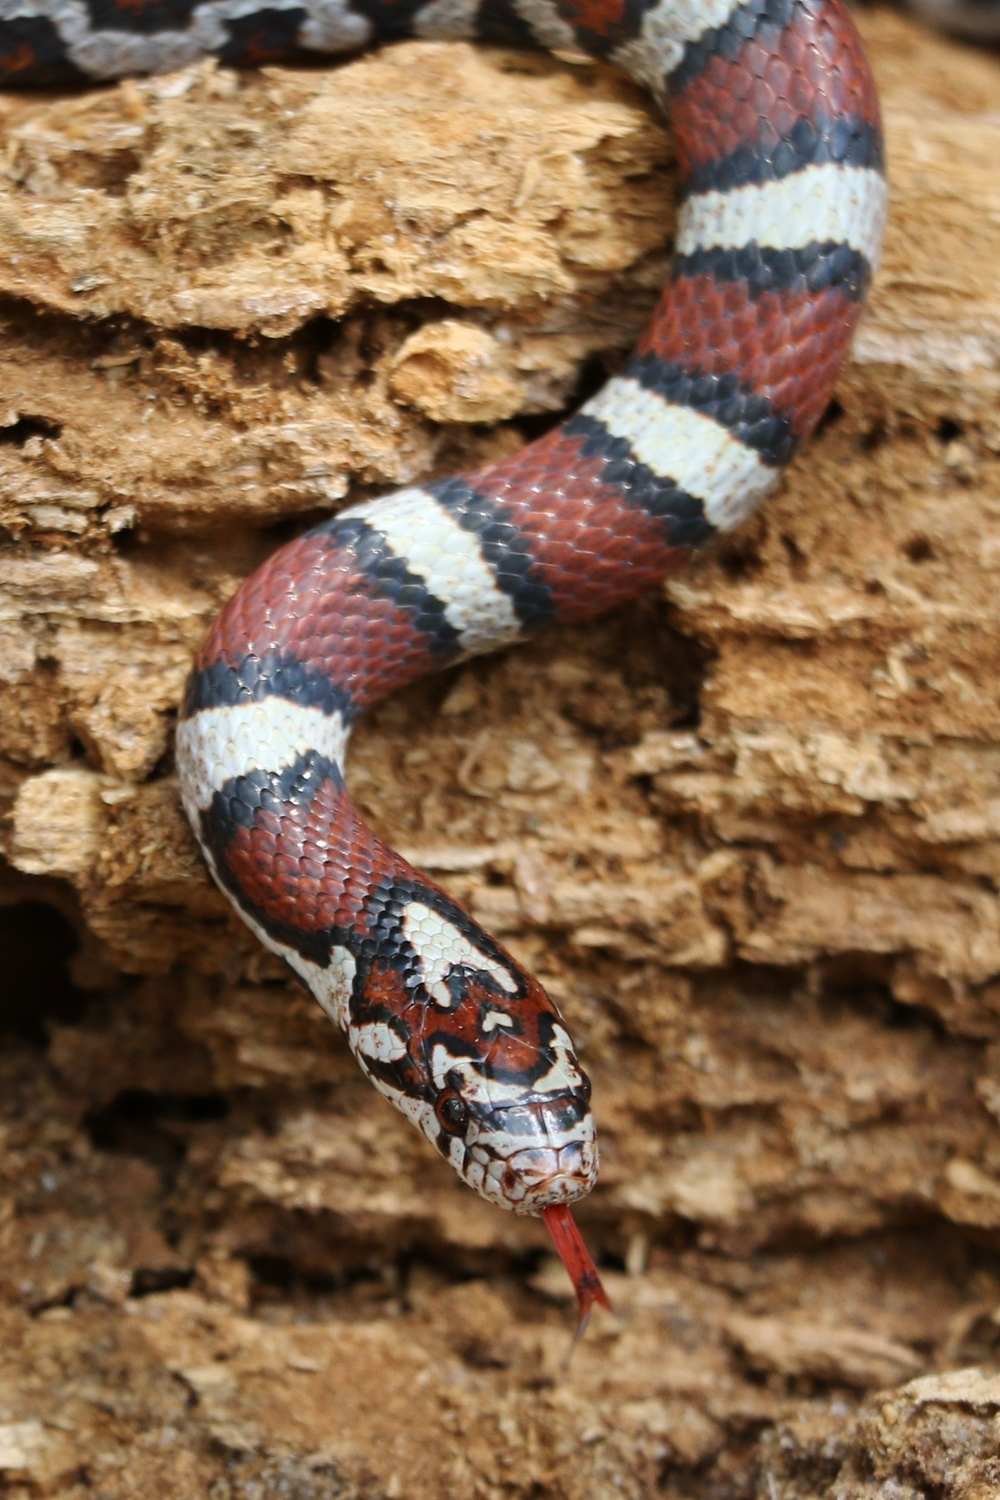 Coastal Plains Milksnake